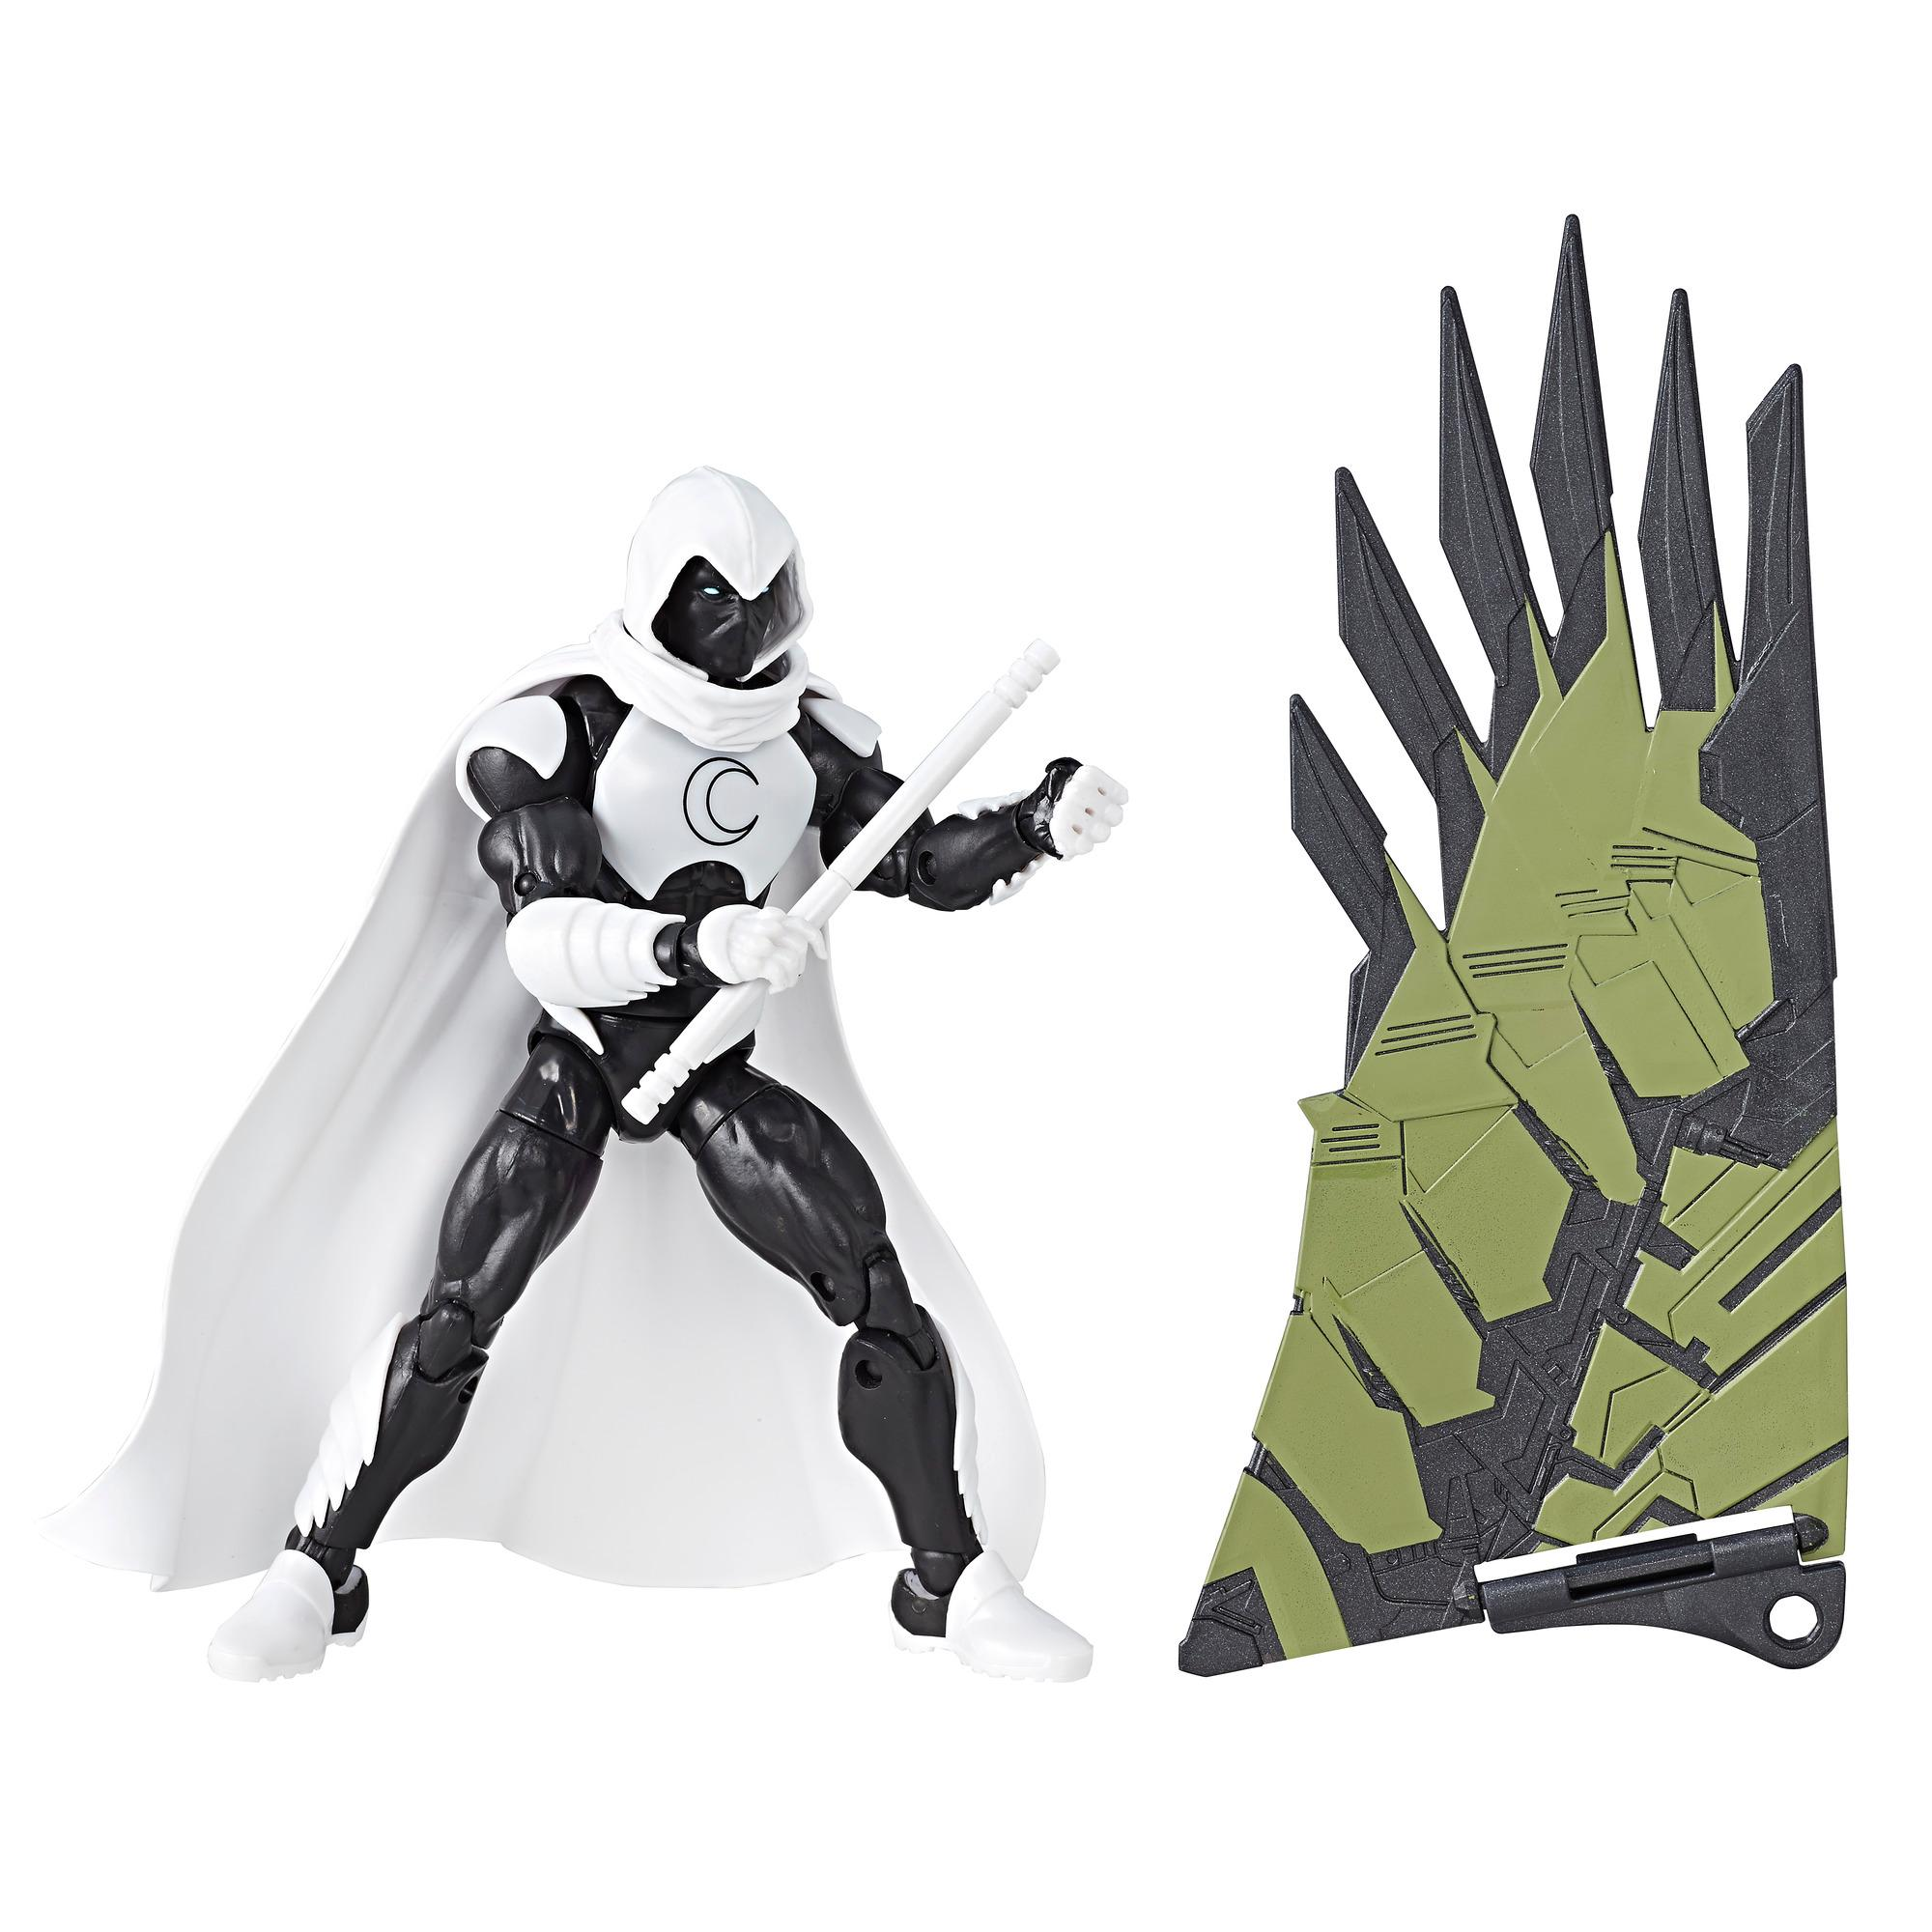 Marvel Legends Series - Figura de Marvel's Moon Knight de 15 cm